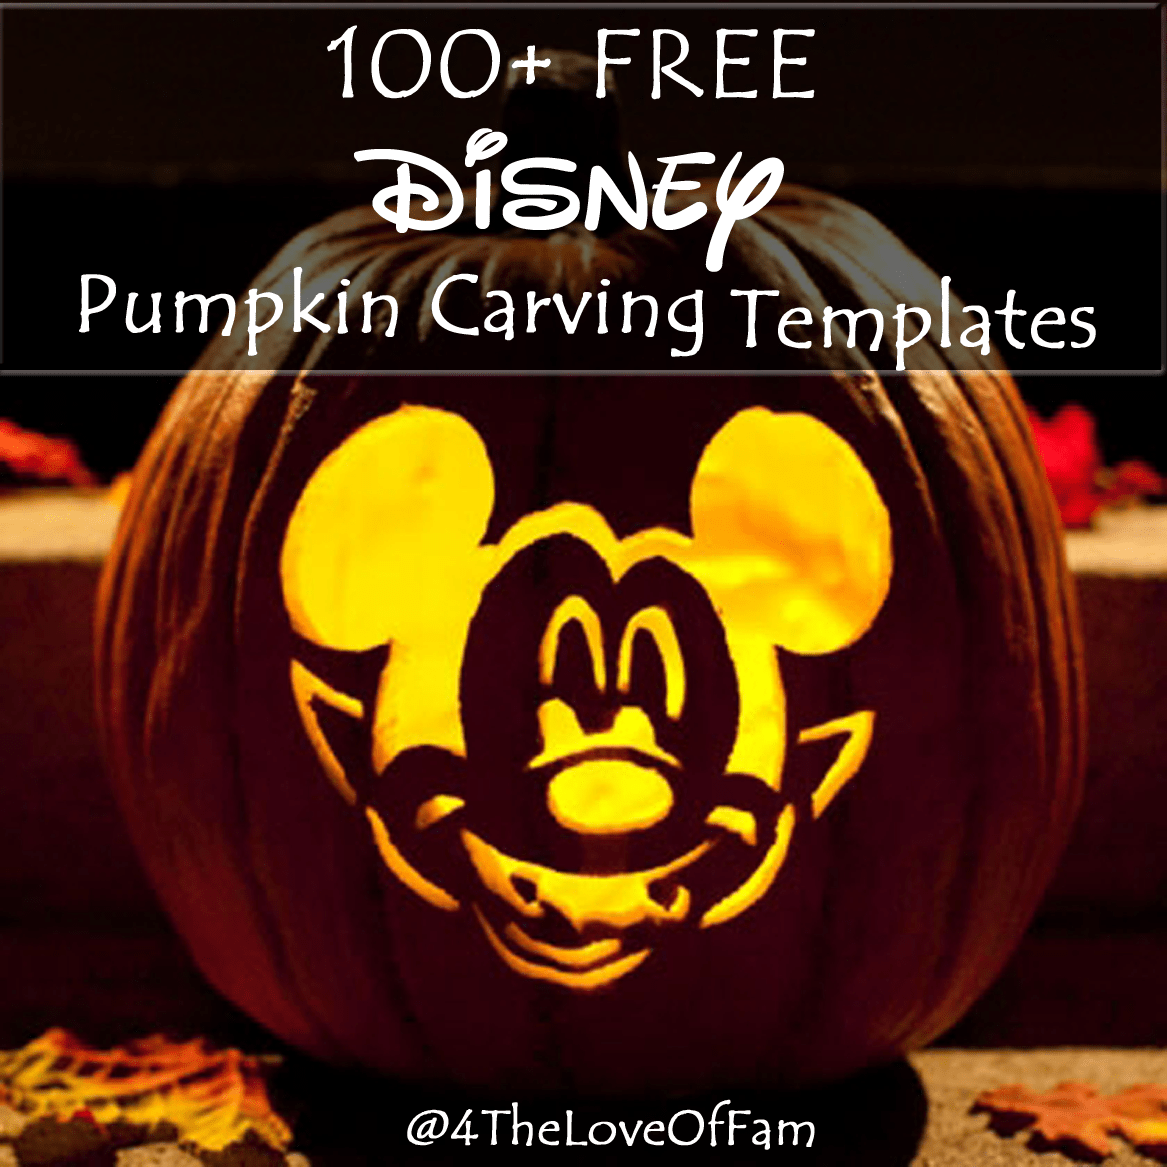 Pumpkin Carving Diagram Trusted Wiring Diagrams Of A 100 Free Disney Halloween Stencil Templates W Tools Basic